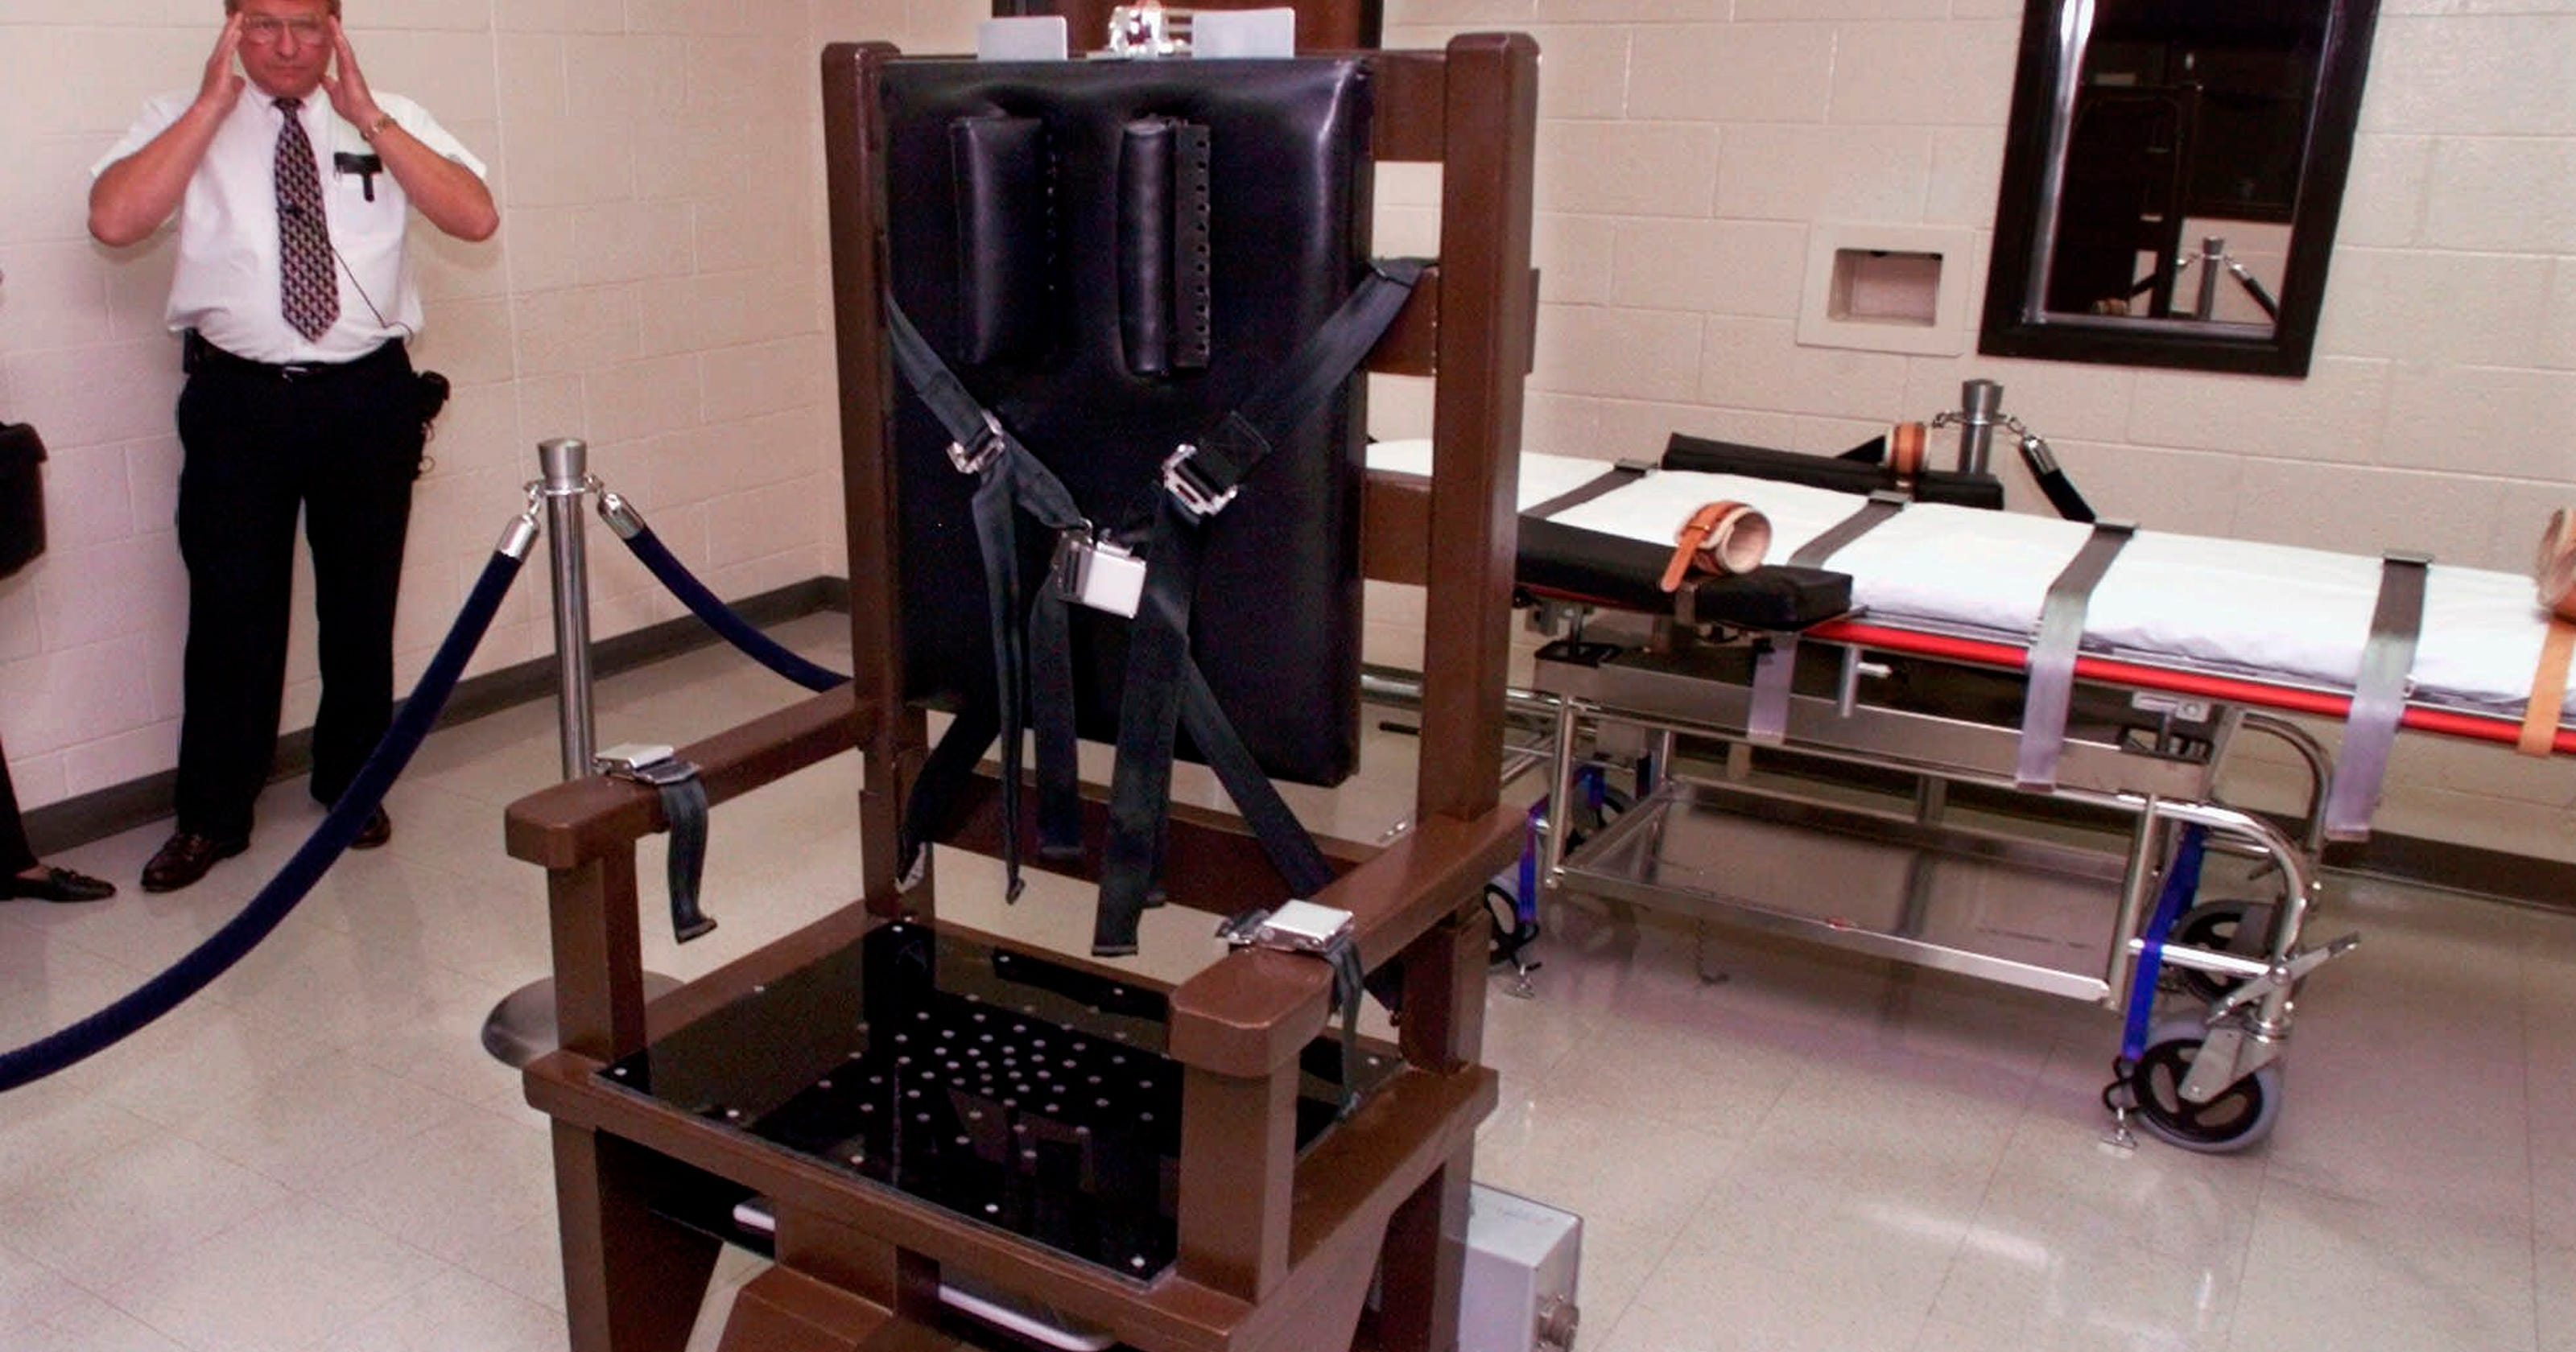 Tennessee death row lawsuit seeks firing squad instead of